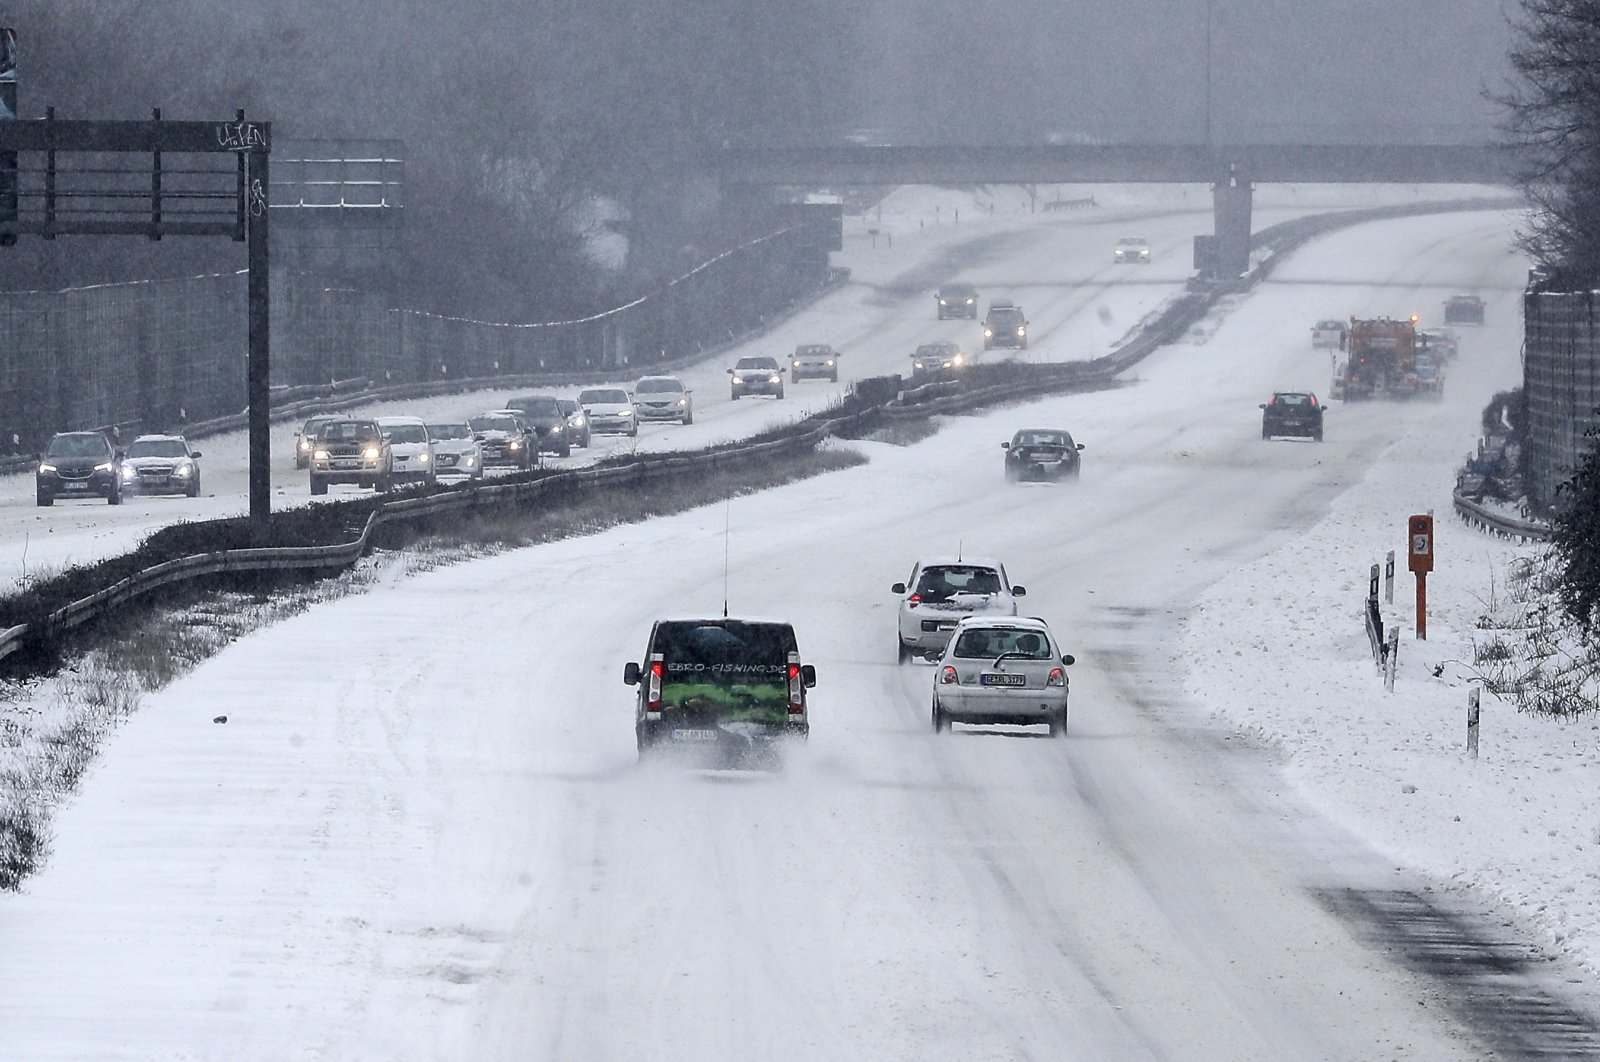 Cars driving carefully on the snowy Autobahn A2 in Gelsenkirchen, Germany, Sunday, Feb. 7, 2021. (AP Photo)